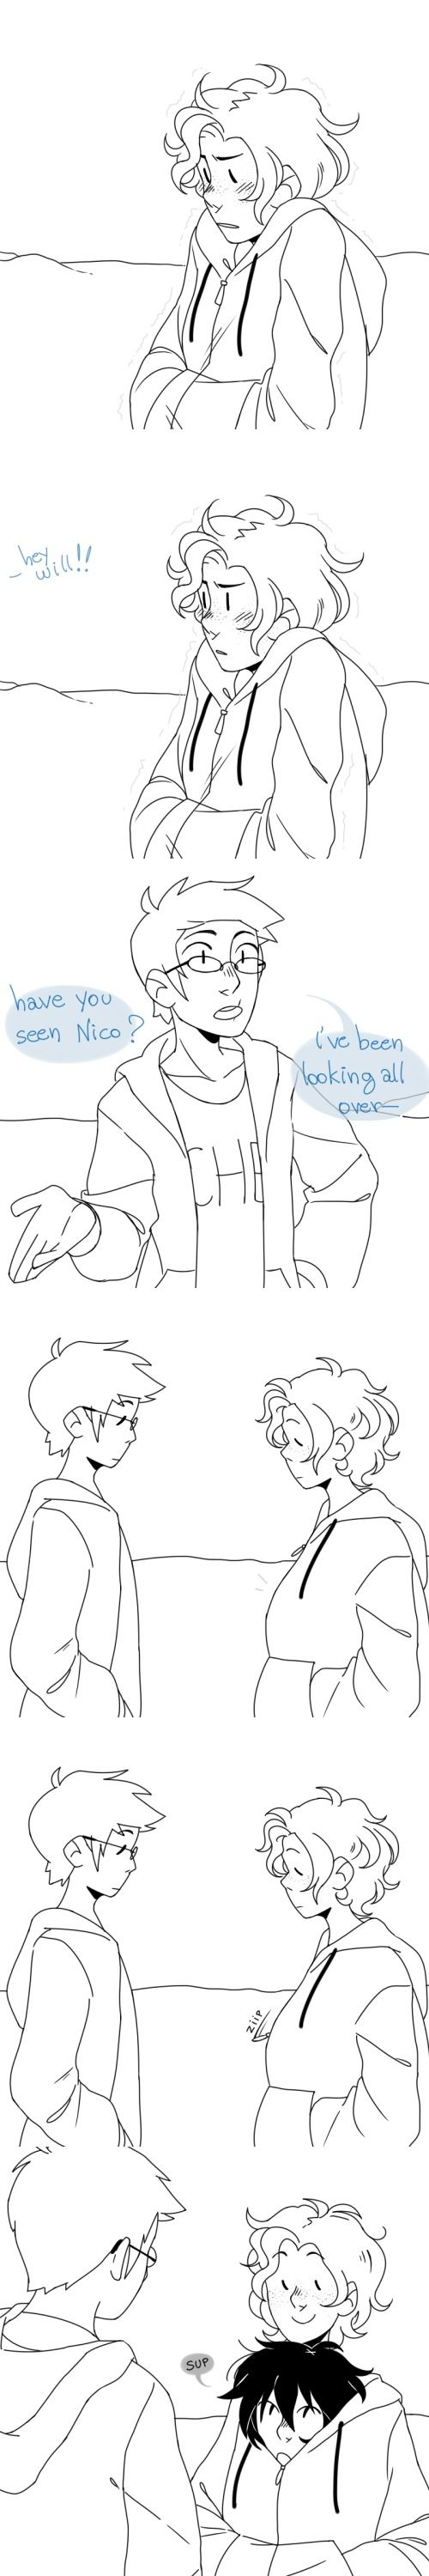 Thesquirrelisonfire it's winter in chb and will is wearing a really oversized sweater because apollo